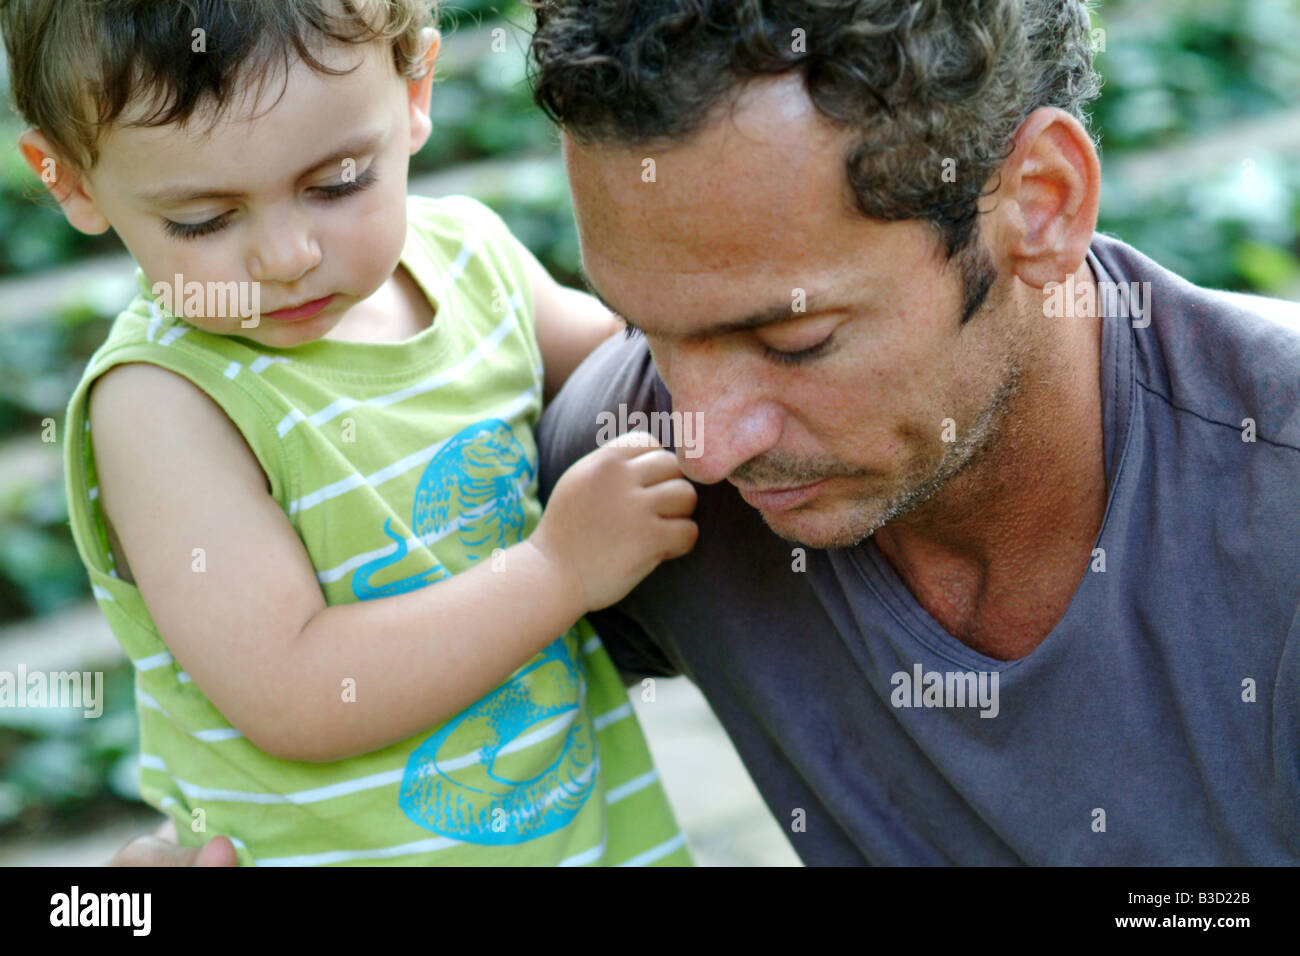 a father and his toddler son play together in the park on a spring day - Stock Image